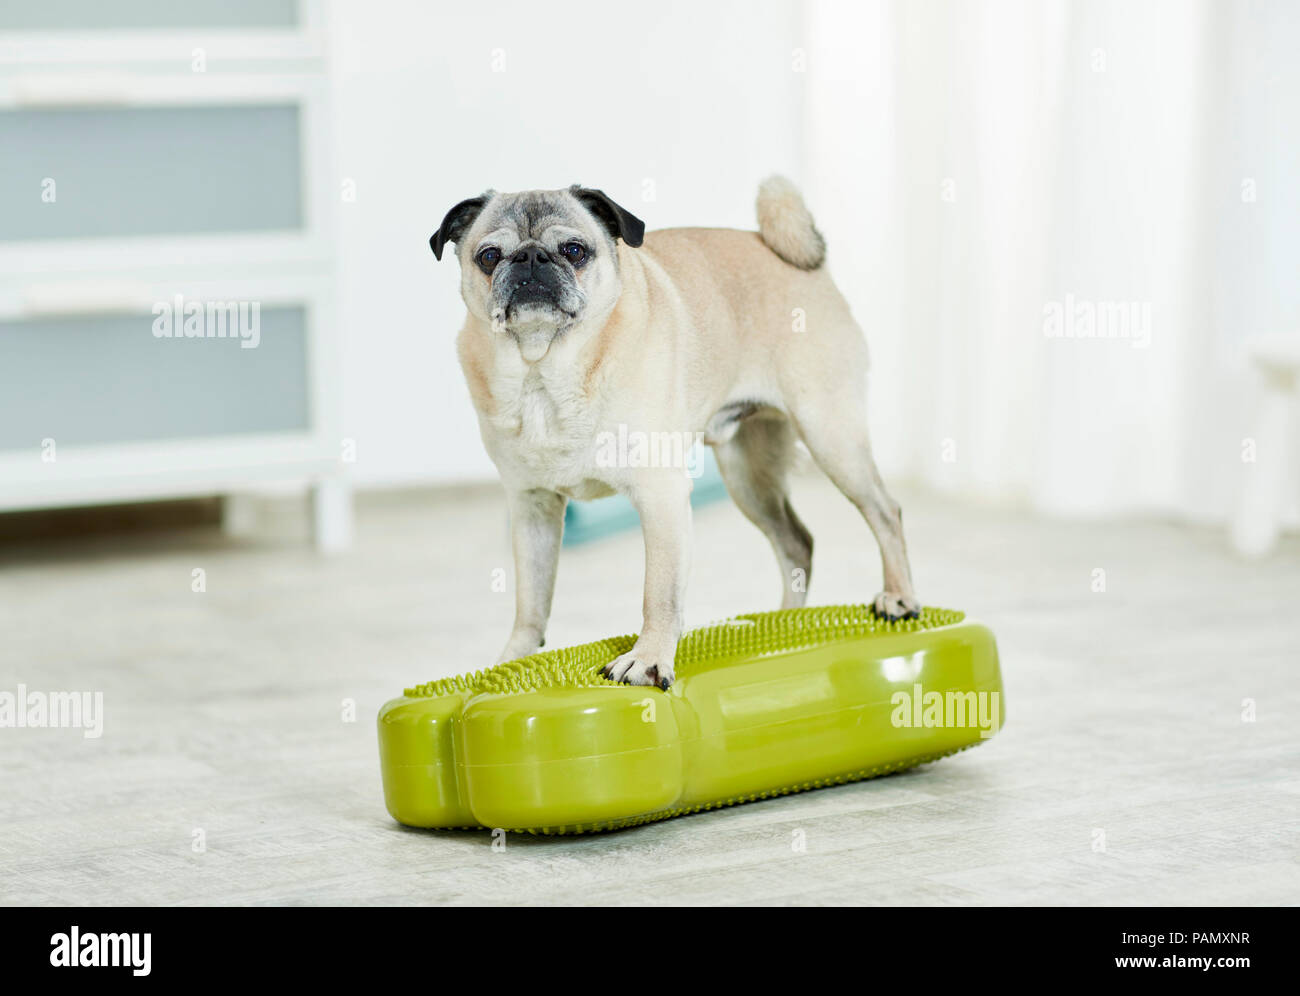 Physical therapy: Old pug standing on a balance board, a coordination exercise. Germany - Stock Image